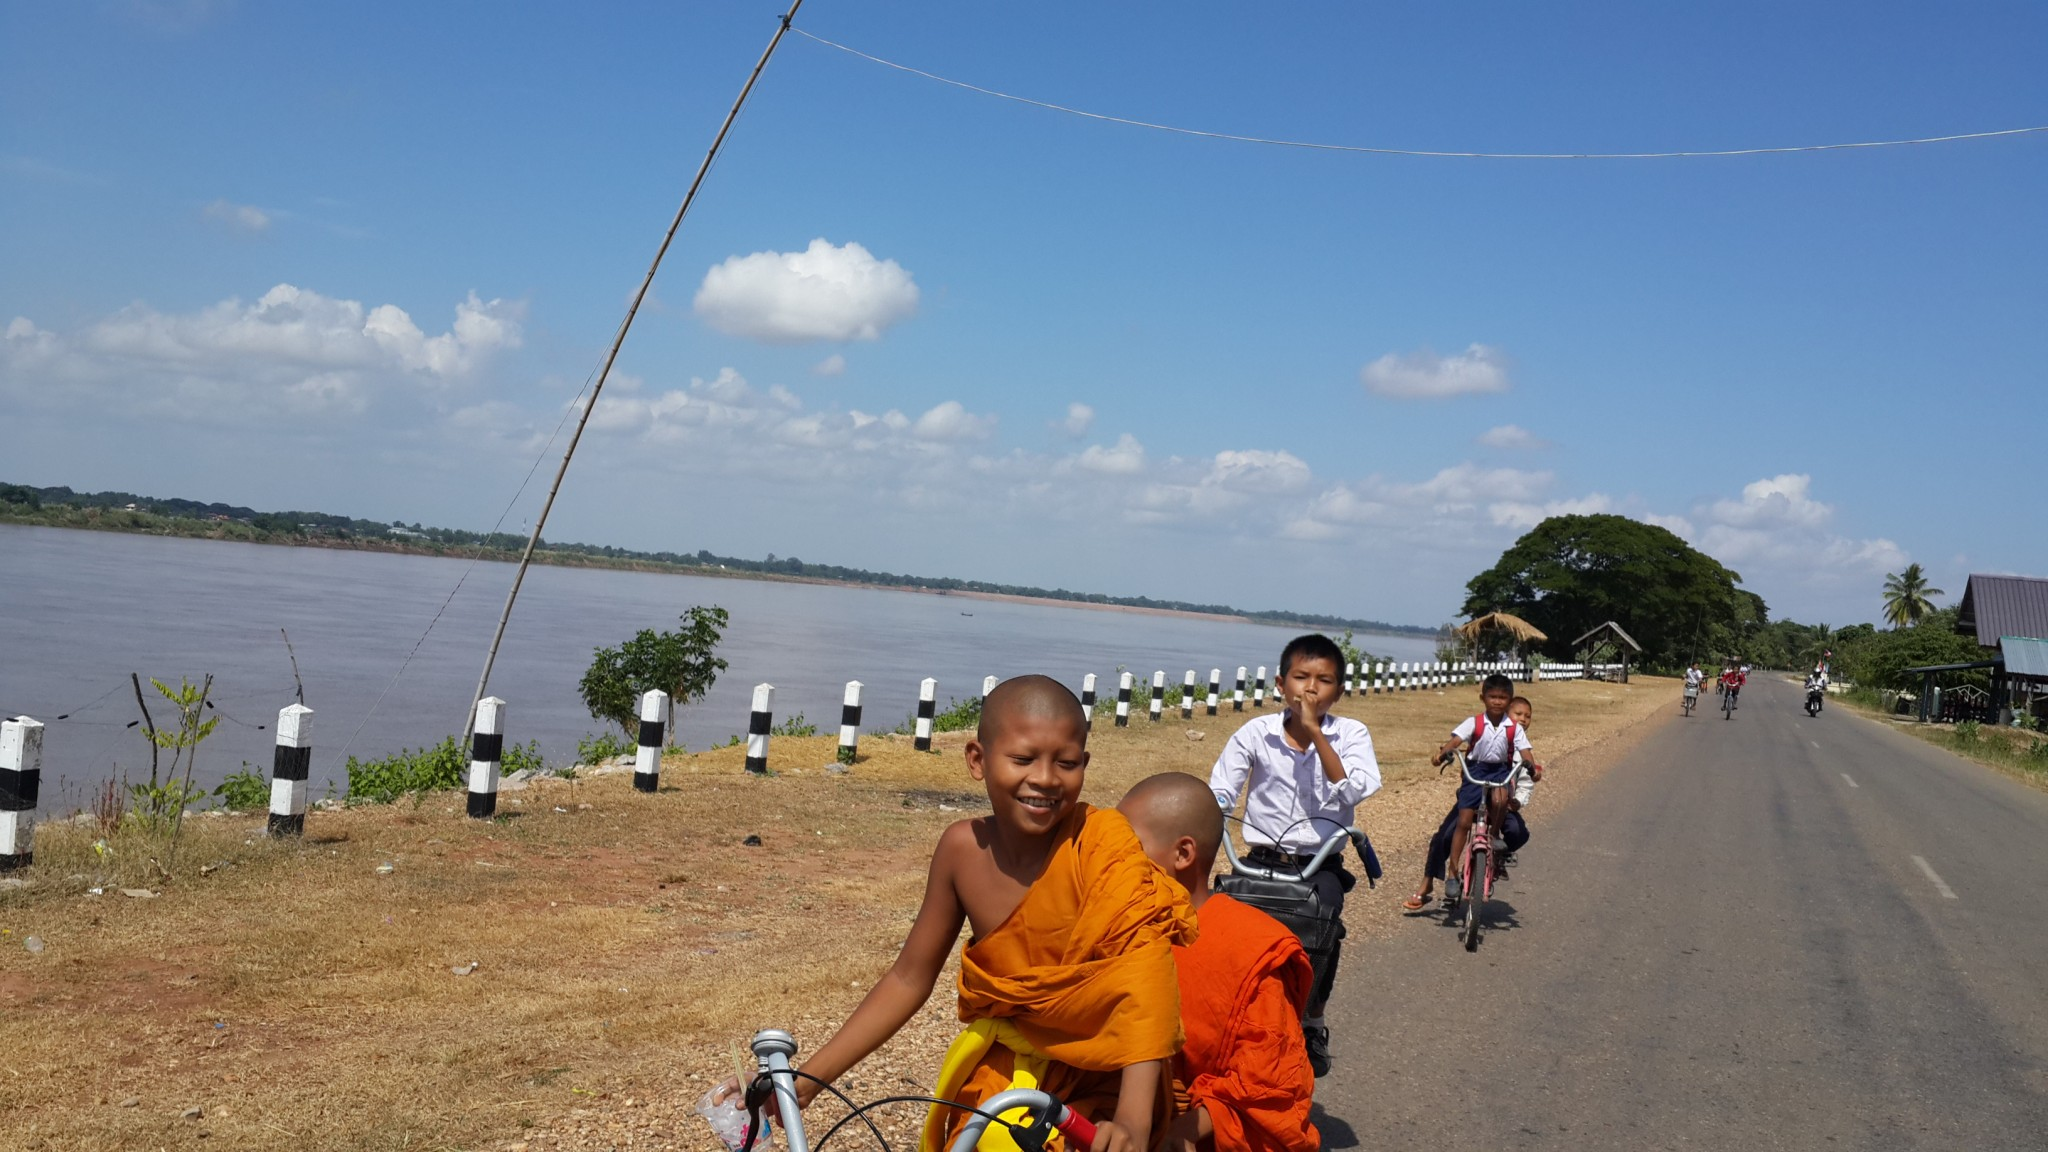 Cycling along the Mekong with hoards of school kids on their way home. The saffron robes and shaven heads worn by Theravada Buddhist monks symbolises simplicity and detachment of materialism.